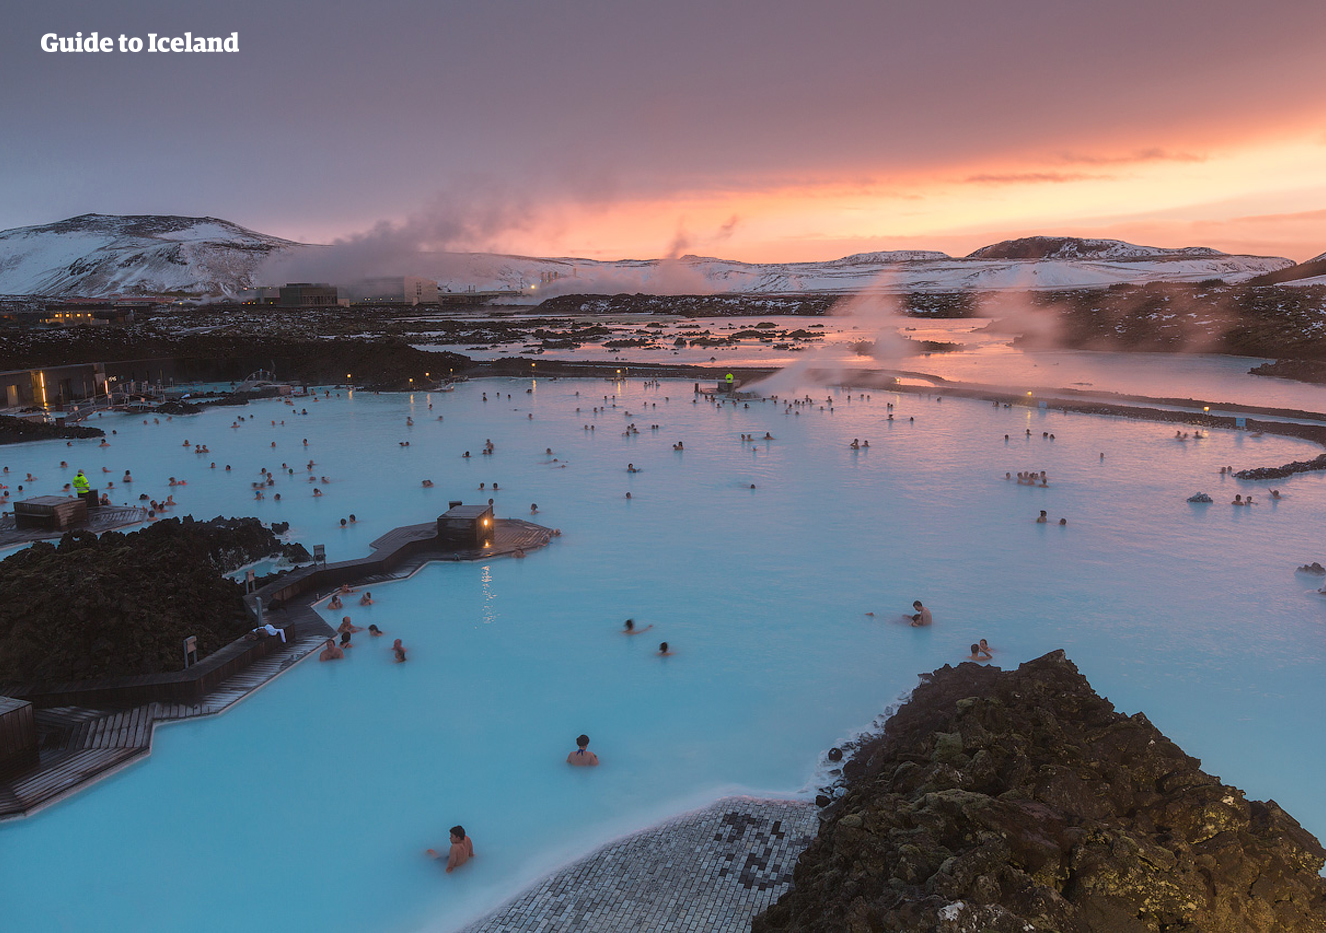 The Blue Lagoon is a place to escape and unwind on the Reykjanes Peninsula.